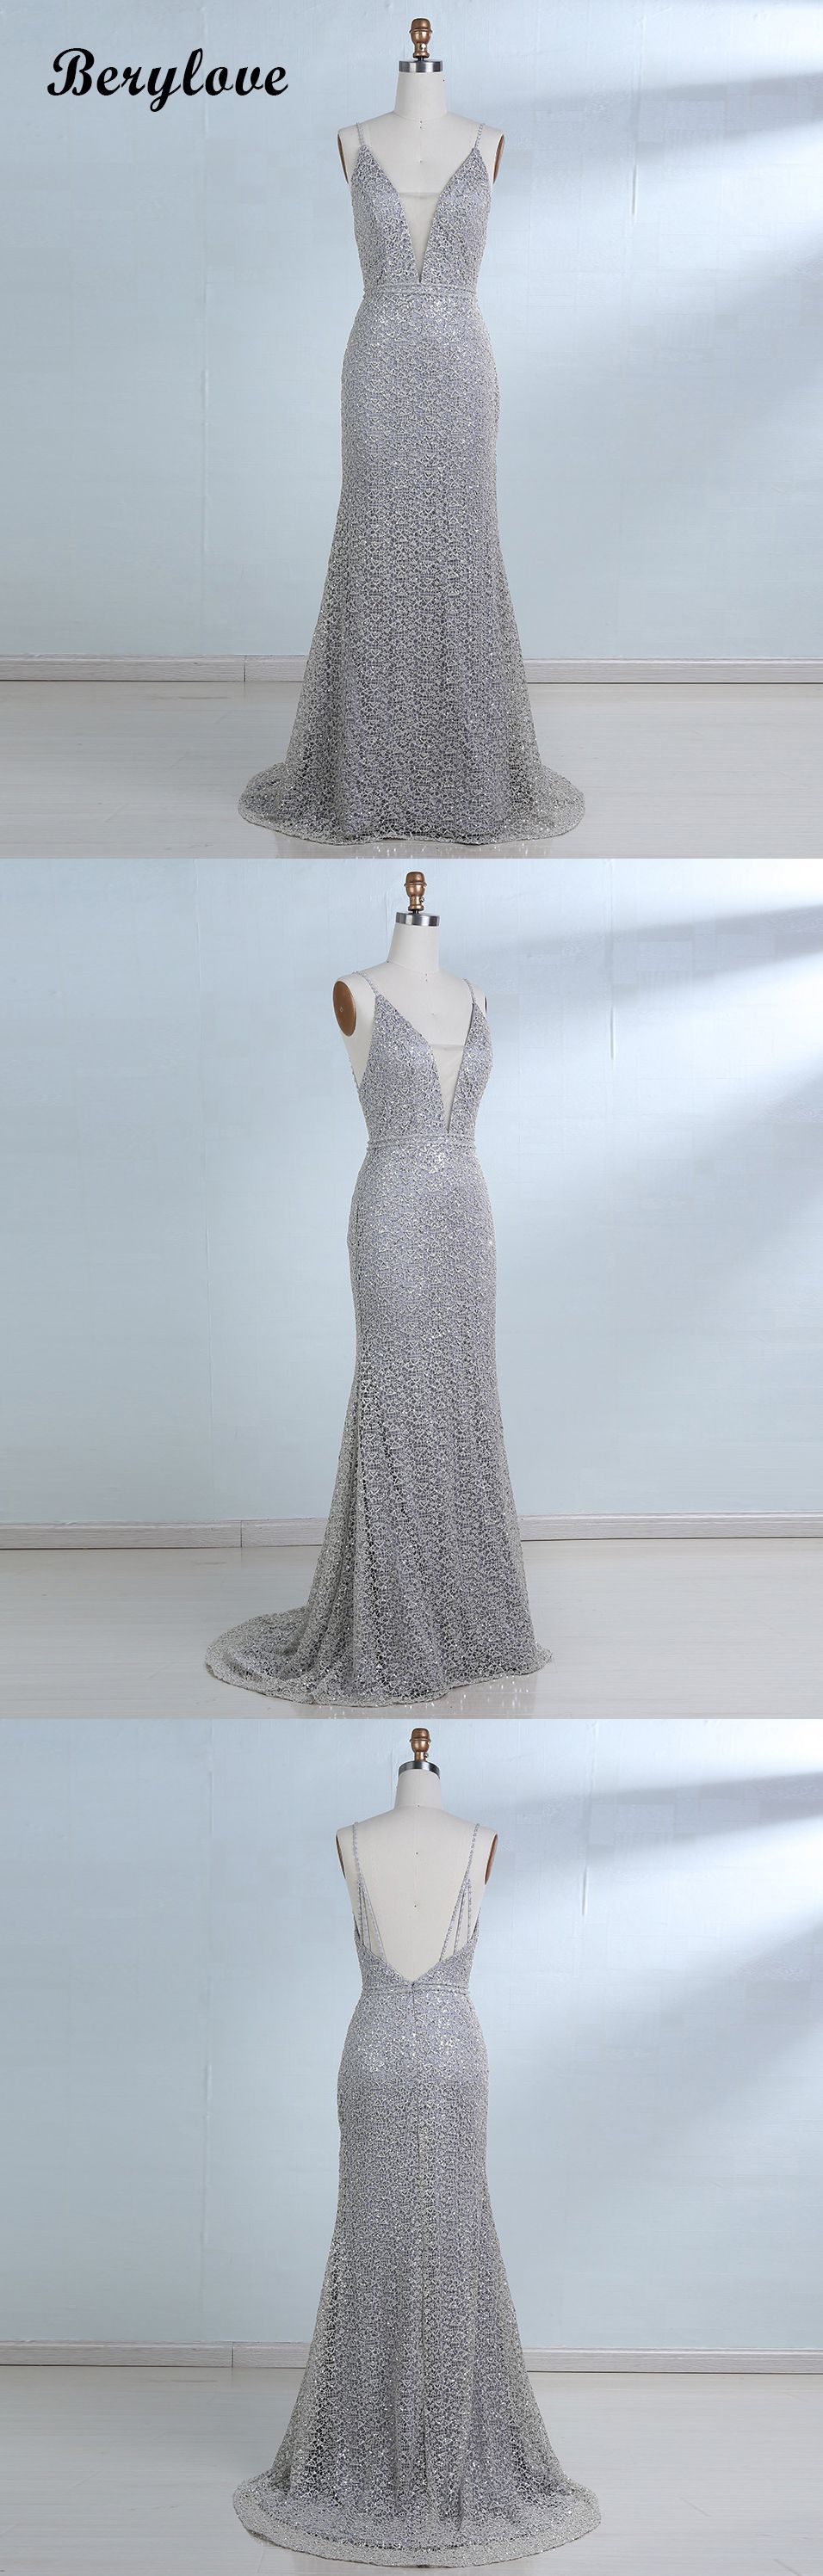 Mermaid Sliver Deep V Neck Backless Sequin Lace Prom Dresses 2018  promdresses promgowns eveinggowns eveningdresses sliverpromdresses ... 29f5f302b3d1